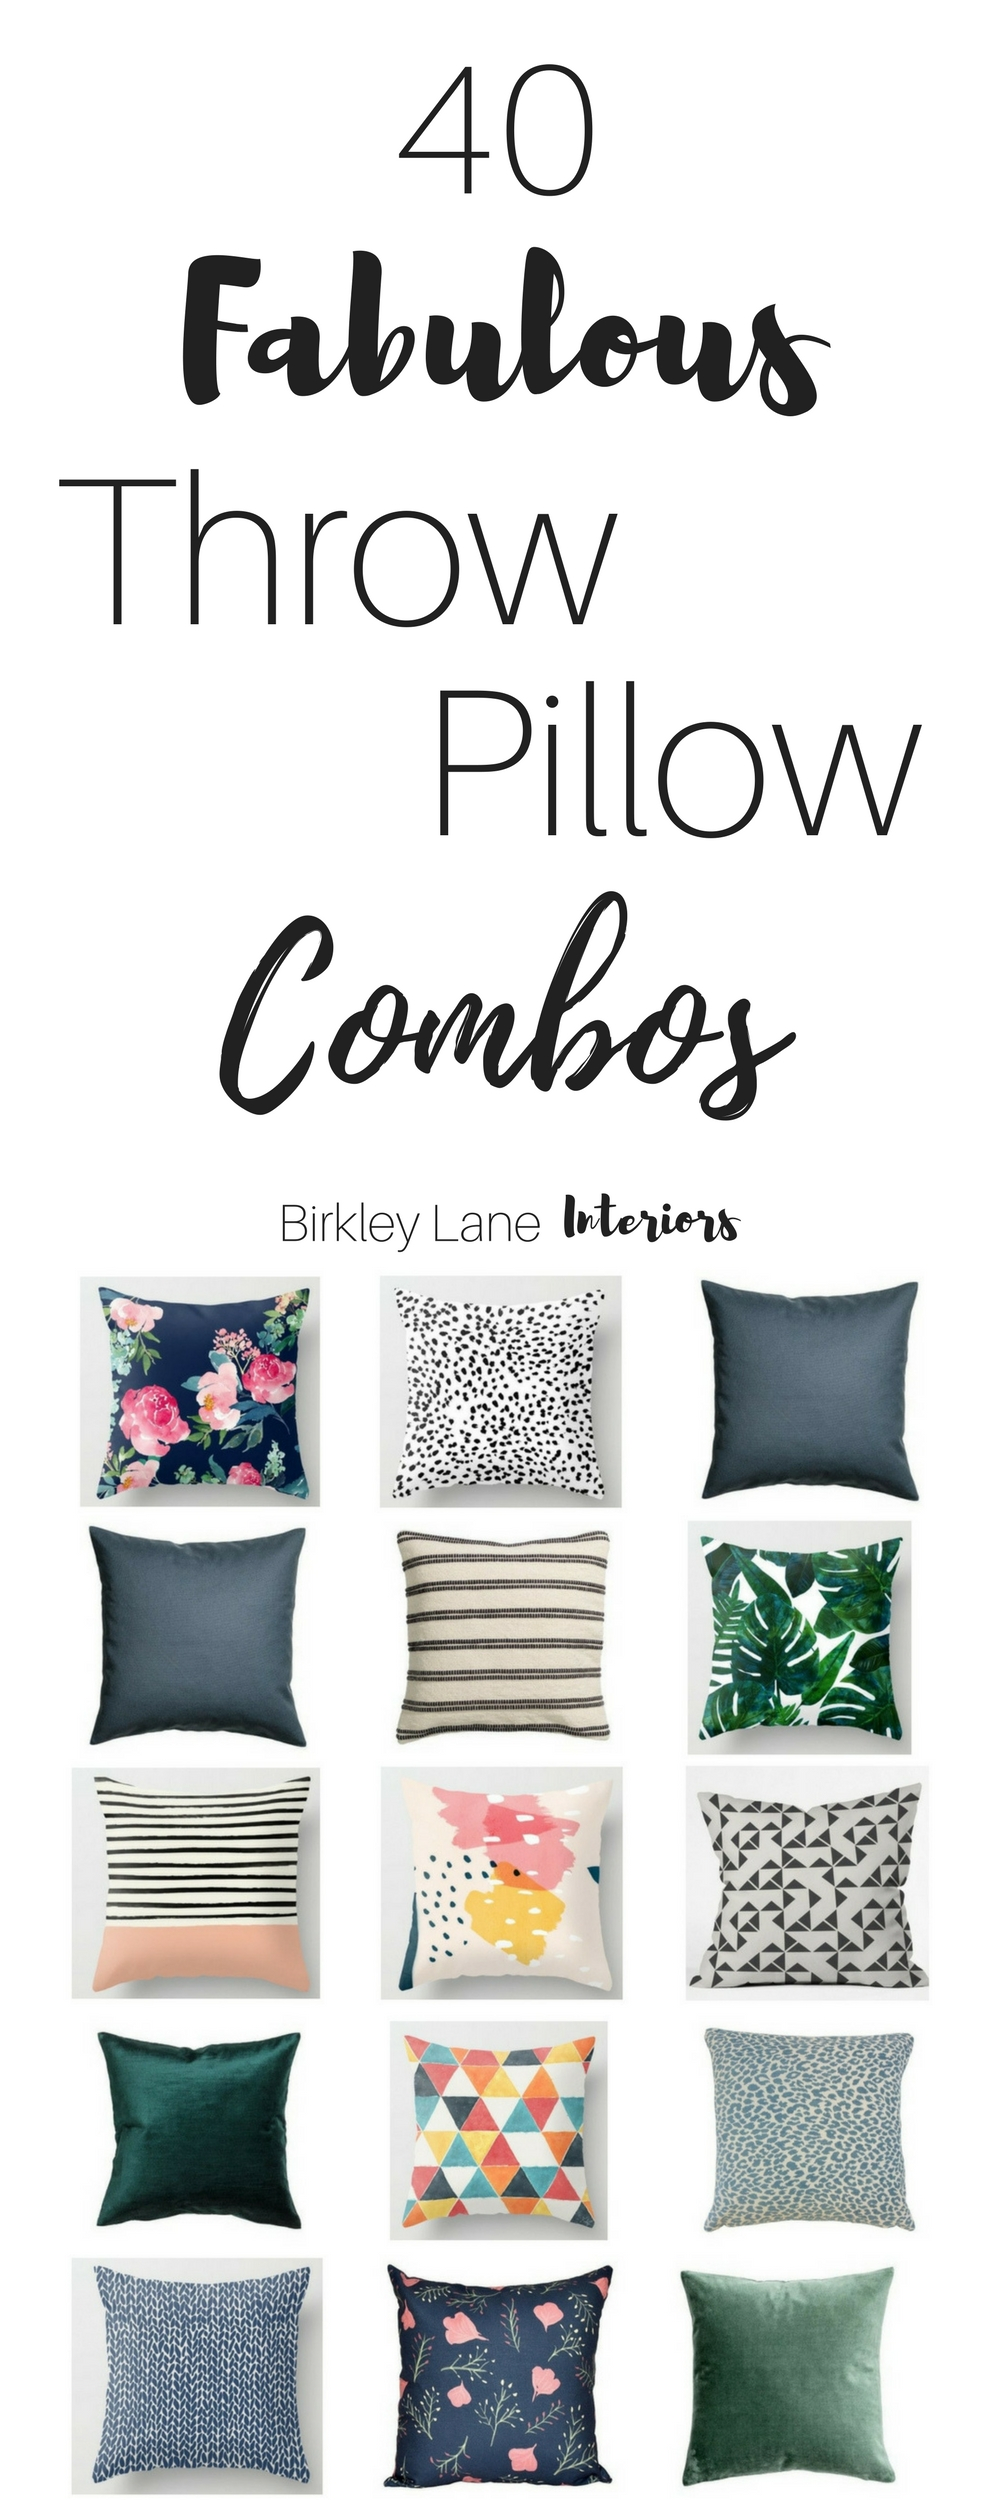 Need some throw pillow inspiration?  Click here for 40 fabulous throw pillow combination ideas that will definitely add style and interest to any room!